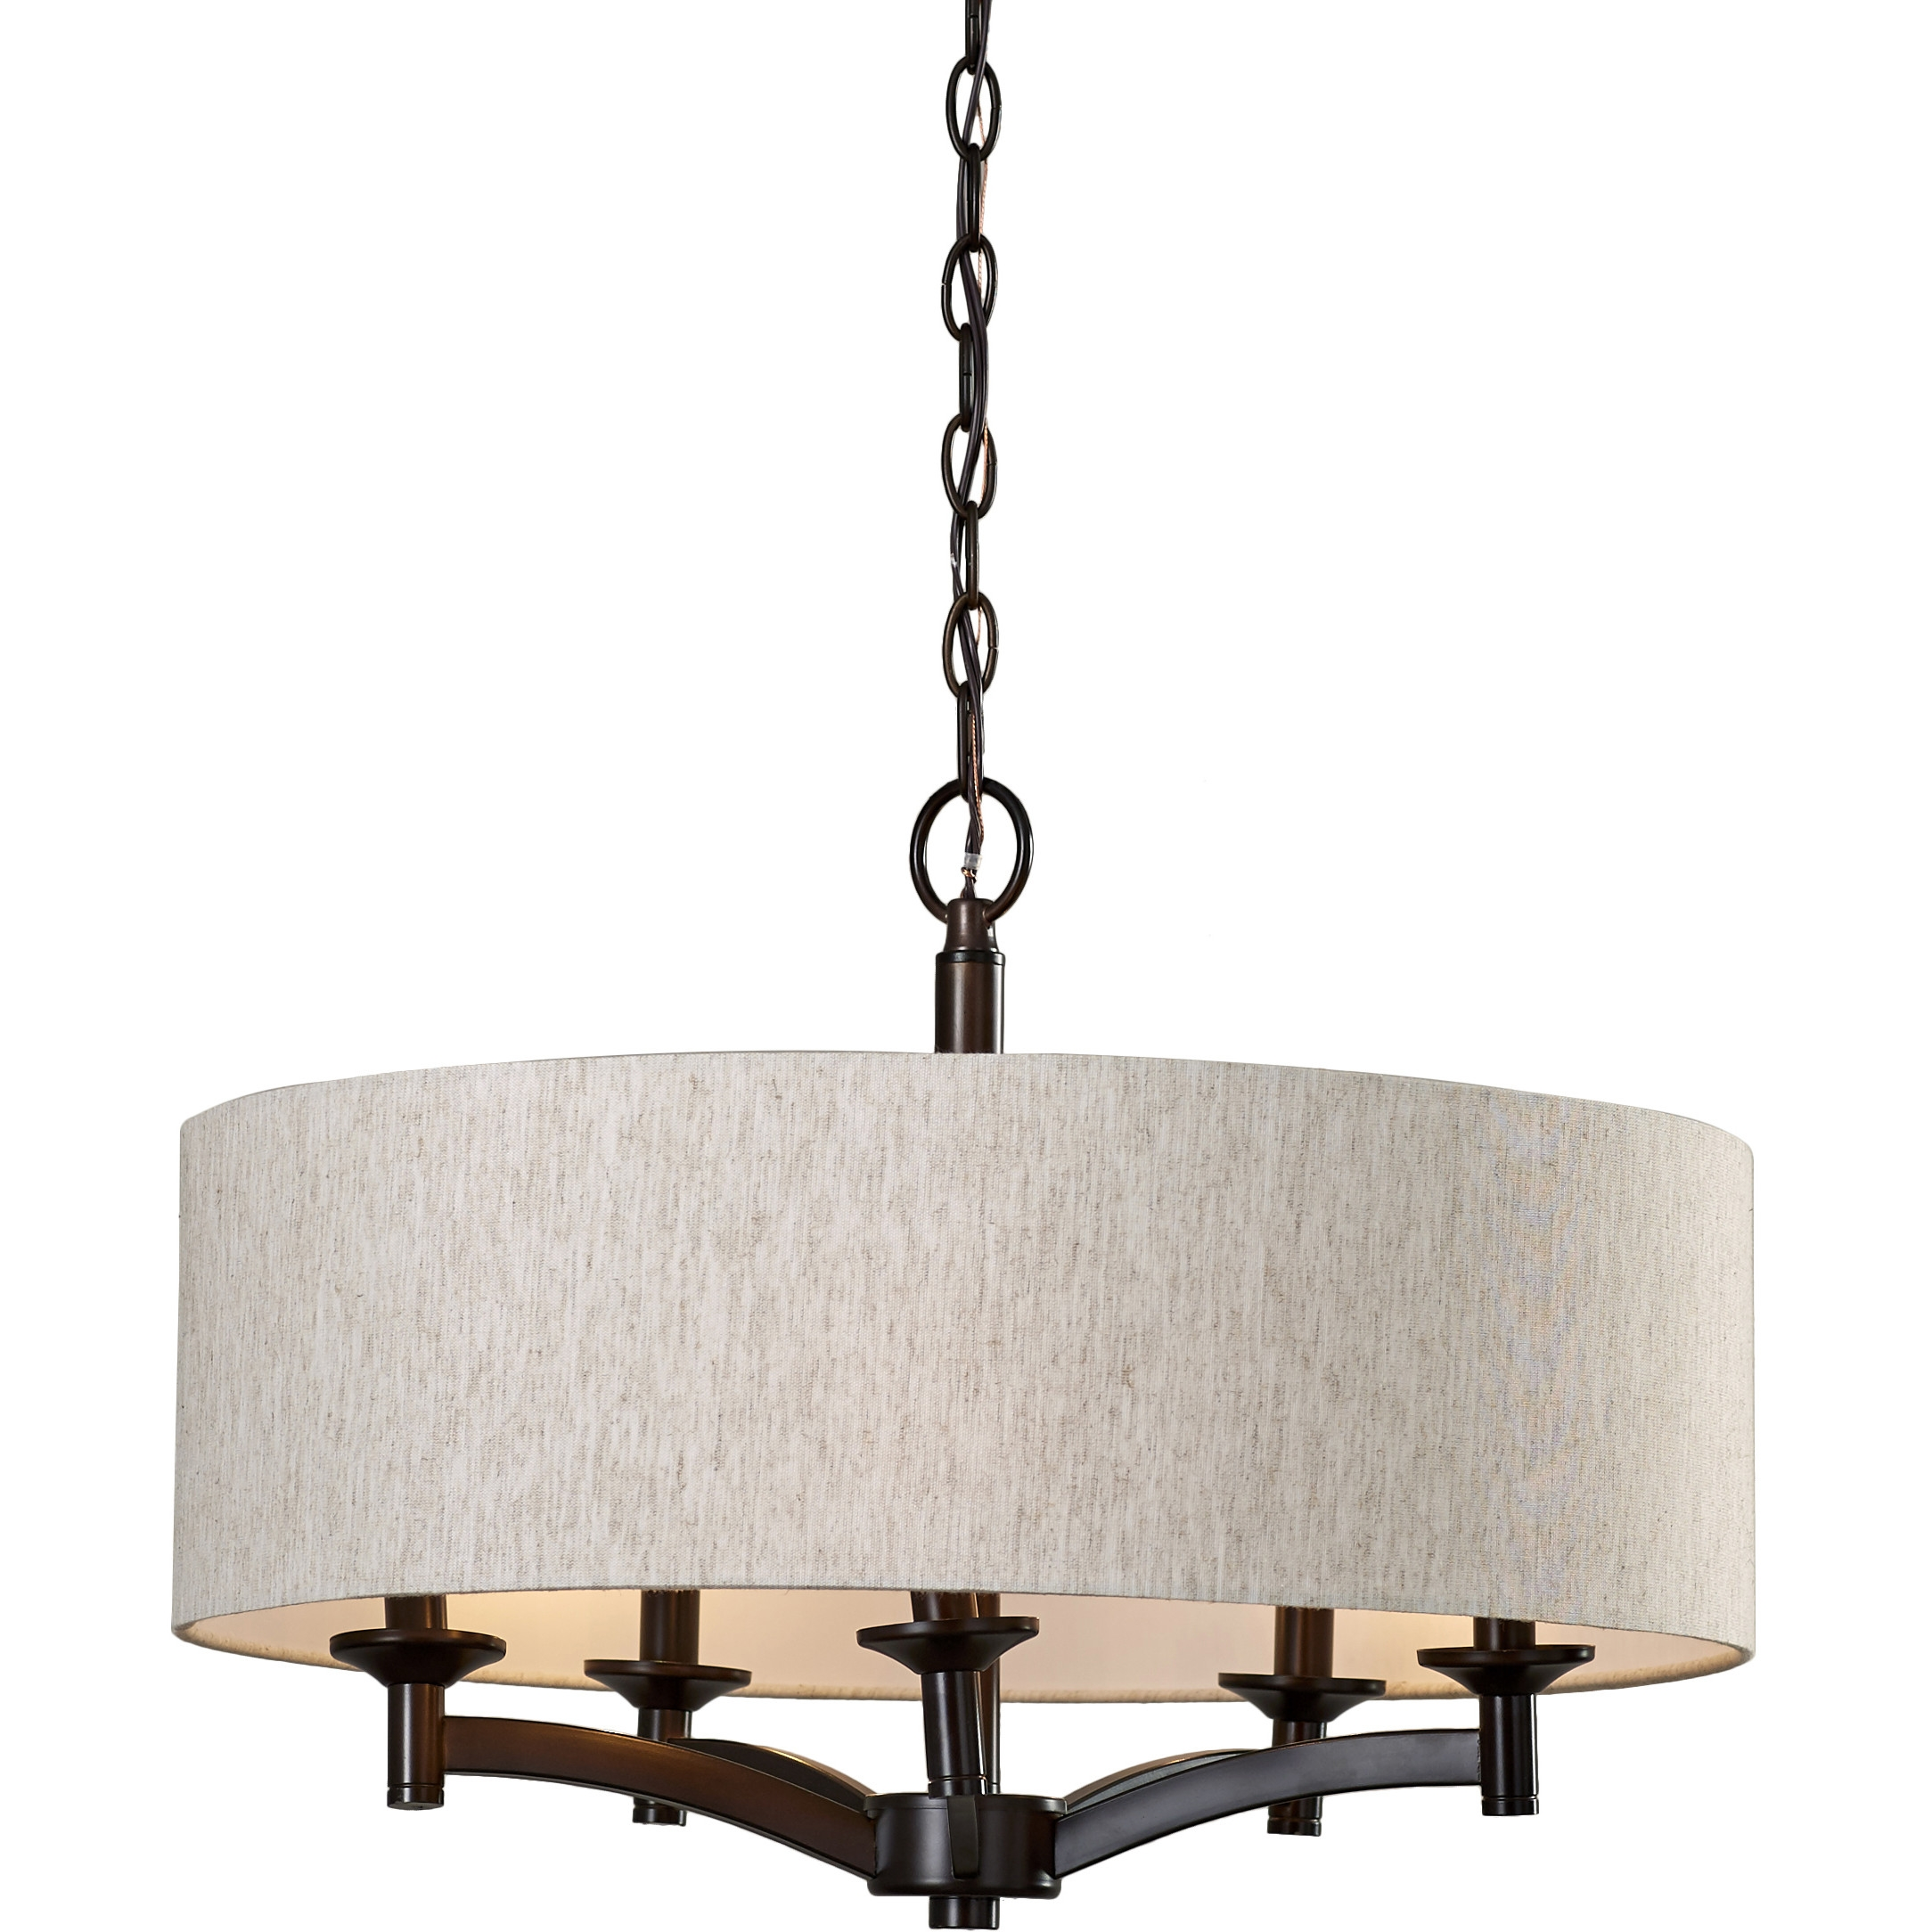 Chandelier Awesome Rectangular Drum Chandelier Terrific Intended For Linen Chandeliers (Image 5 of 25)